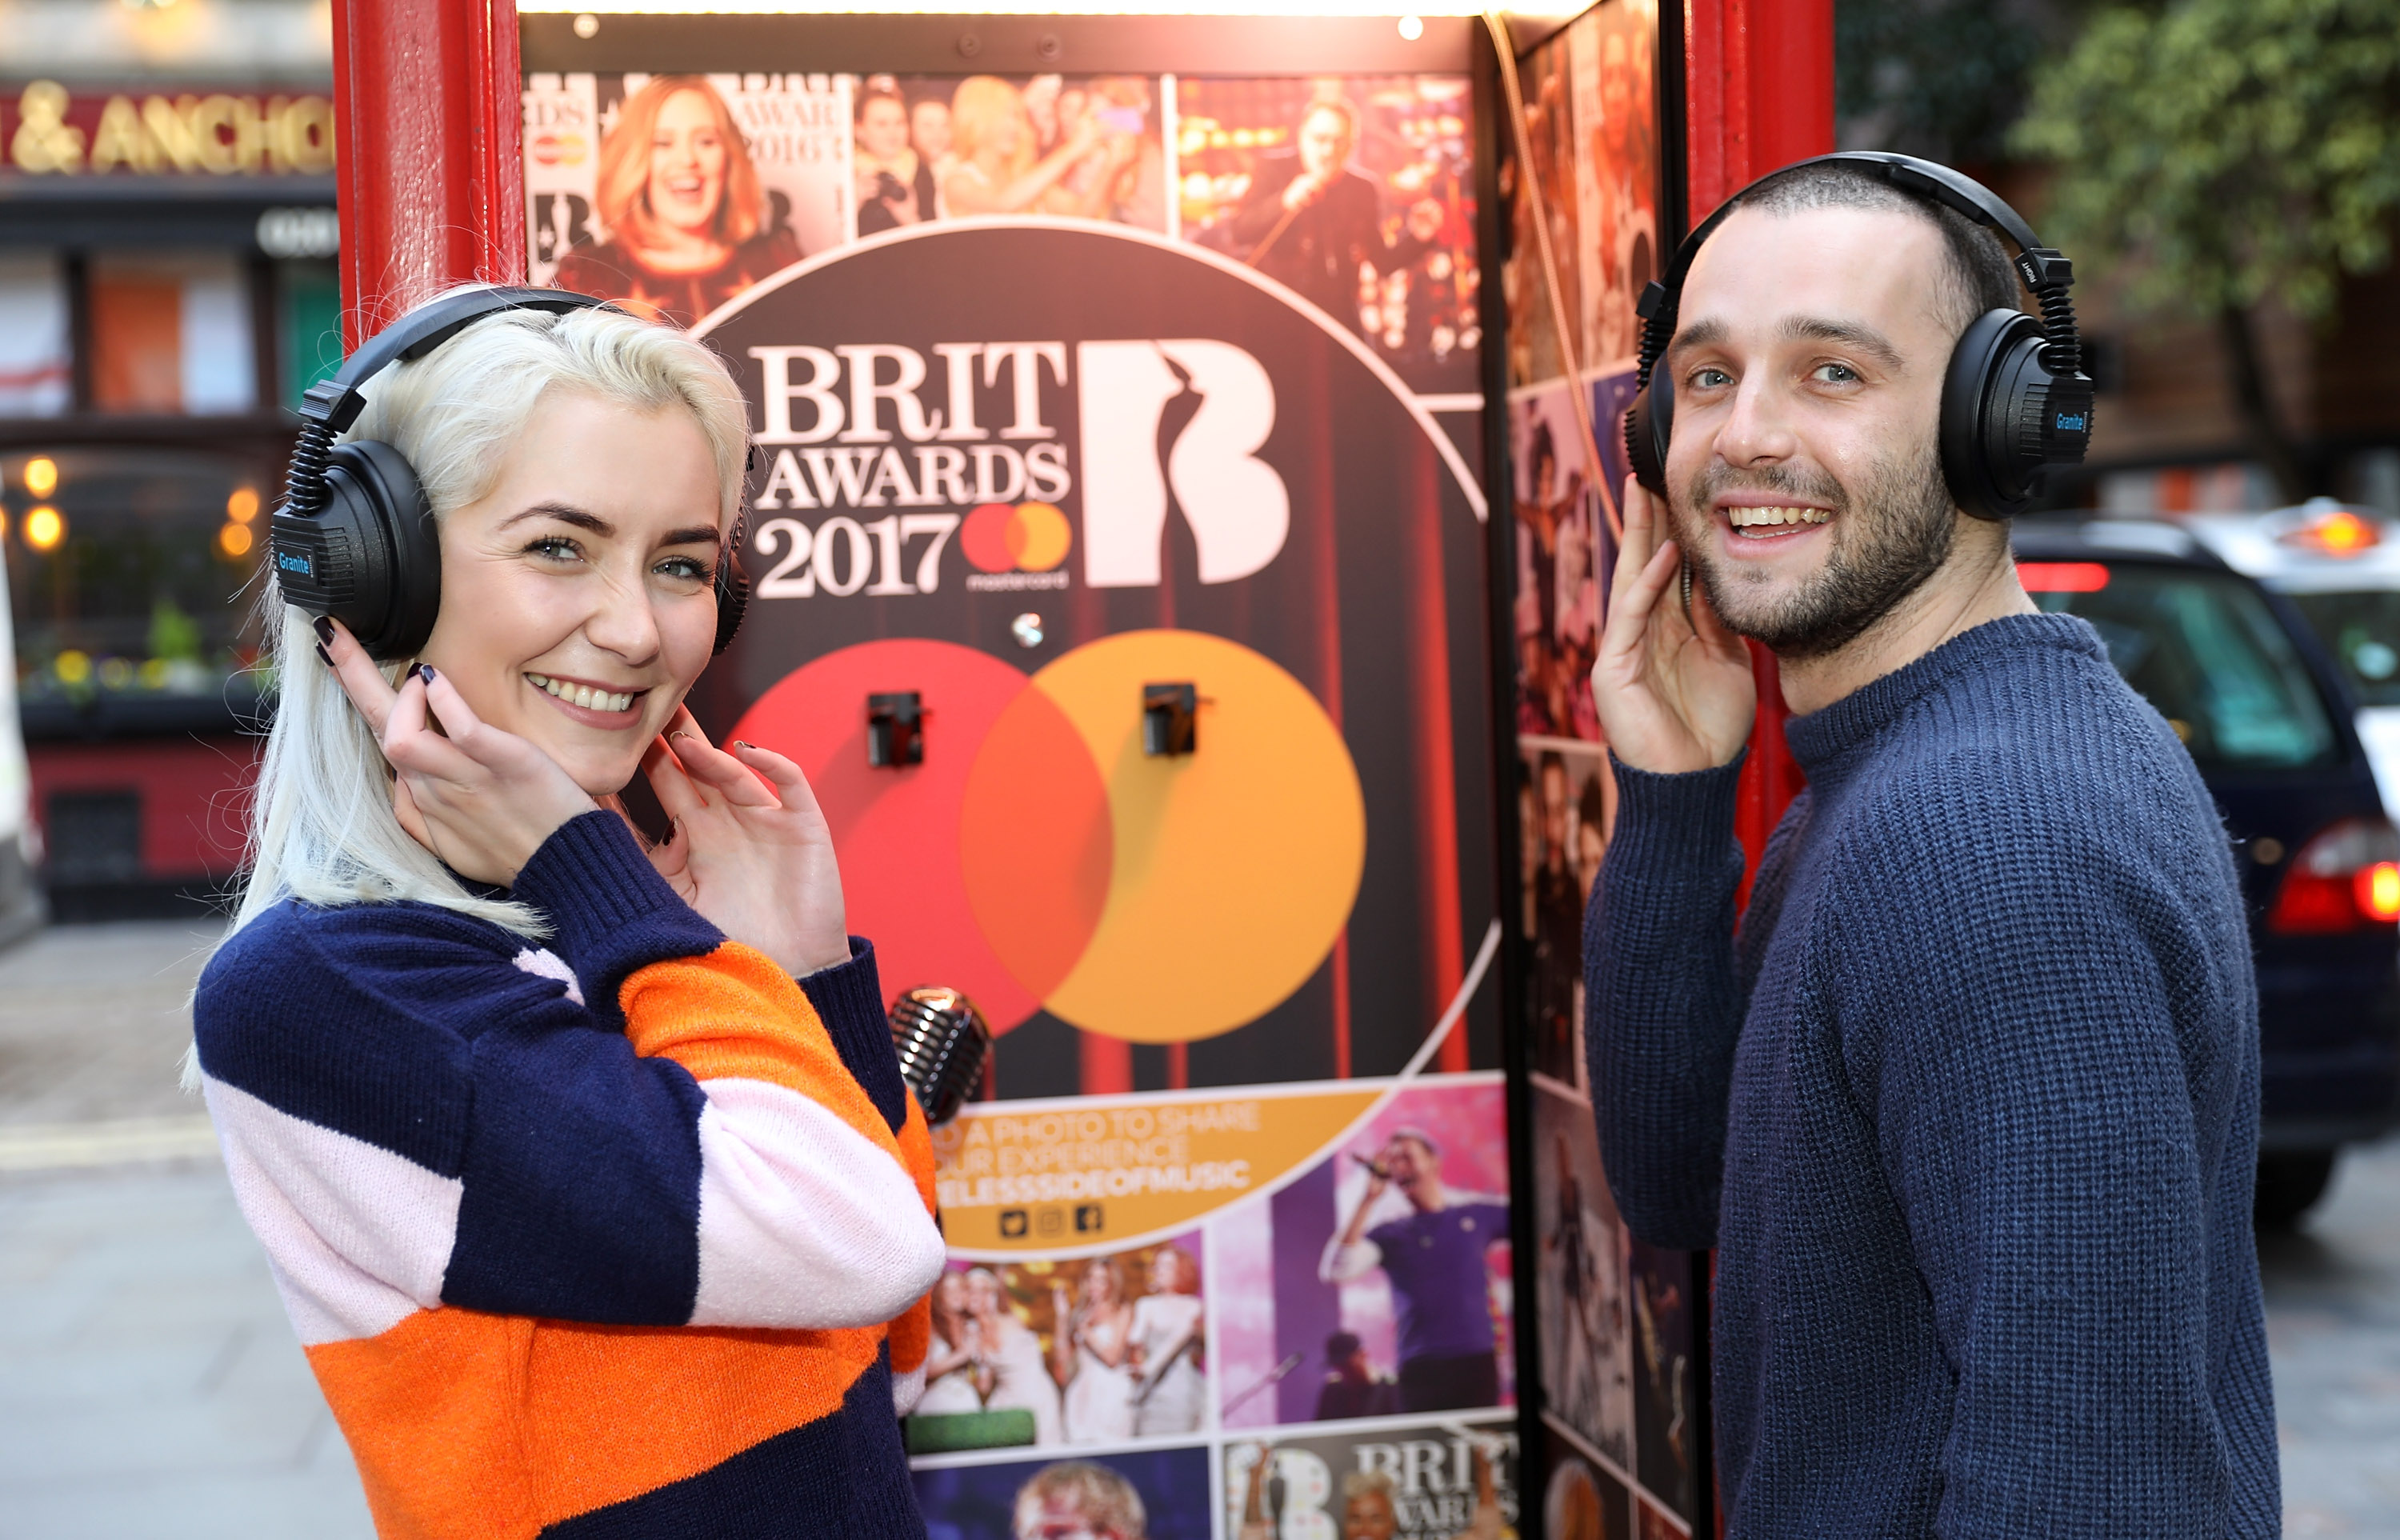 LONDON, ENGLAND - FEBRUARY 20:  Two members of the public enjoying the Mastercard BRITs Listening Booth which launched today in Covent Garden in celebration of The BRIT Awards 2017 on February 20, 2017 in London, England.  Open to the public today and tomorrow, the booth will then travel to the Awards Show which takes place on February 22nd at London's 02 Arena.  (Photo by Tim P. Whitby/Getty Images for Mastercard)